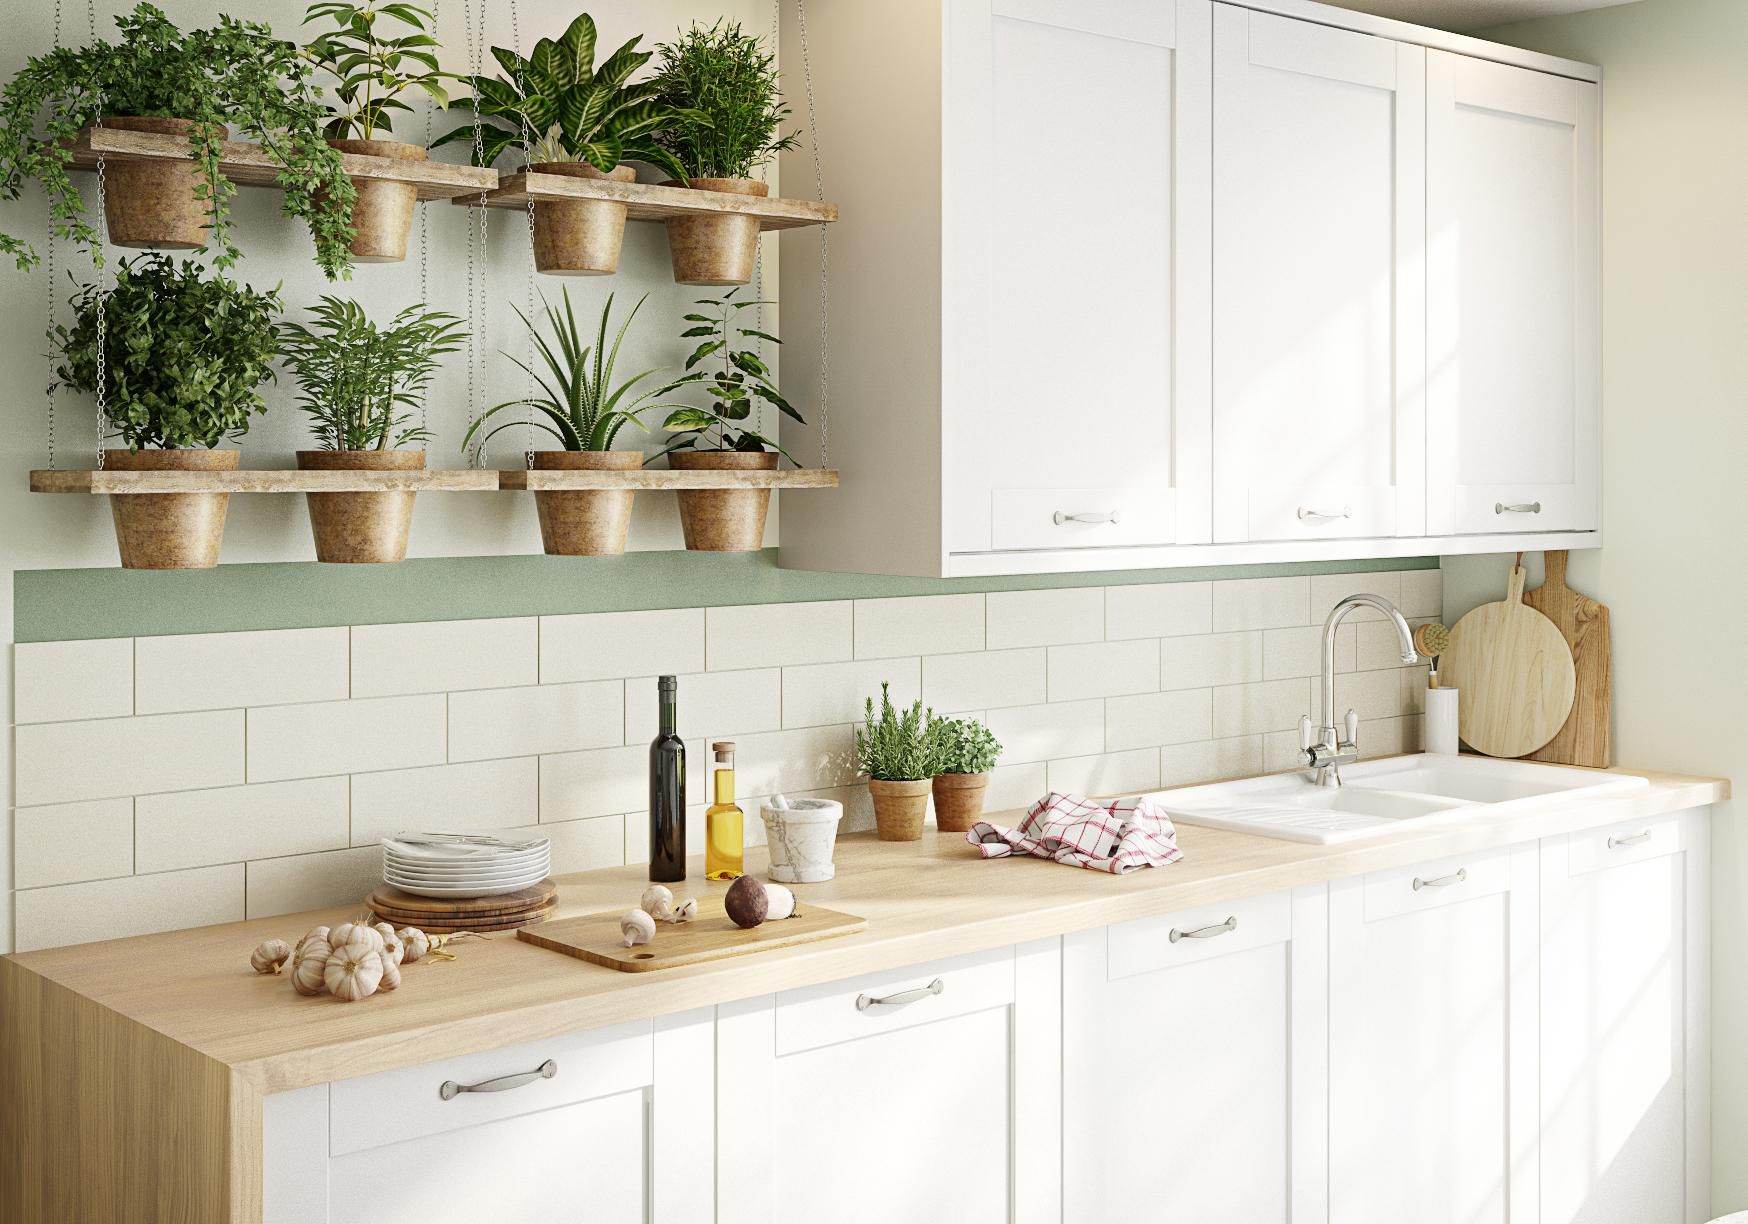 Kitchen cabinet doors buying guide | Ideas & Advice | DIY ...